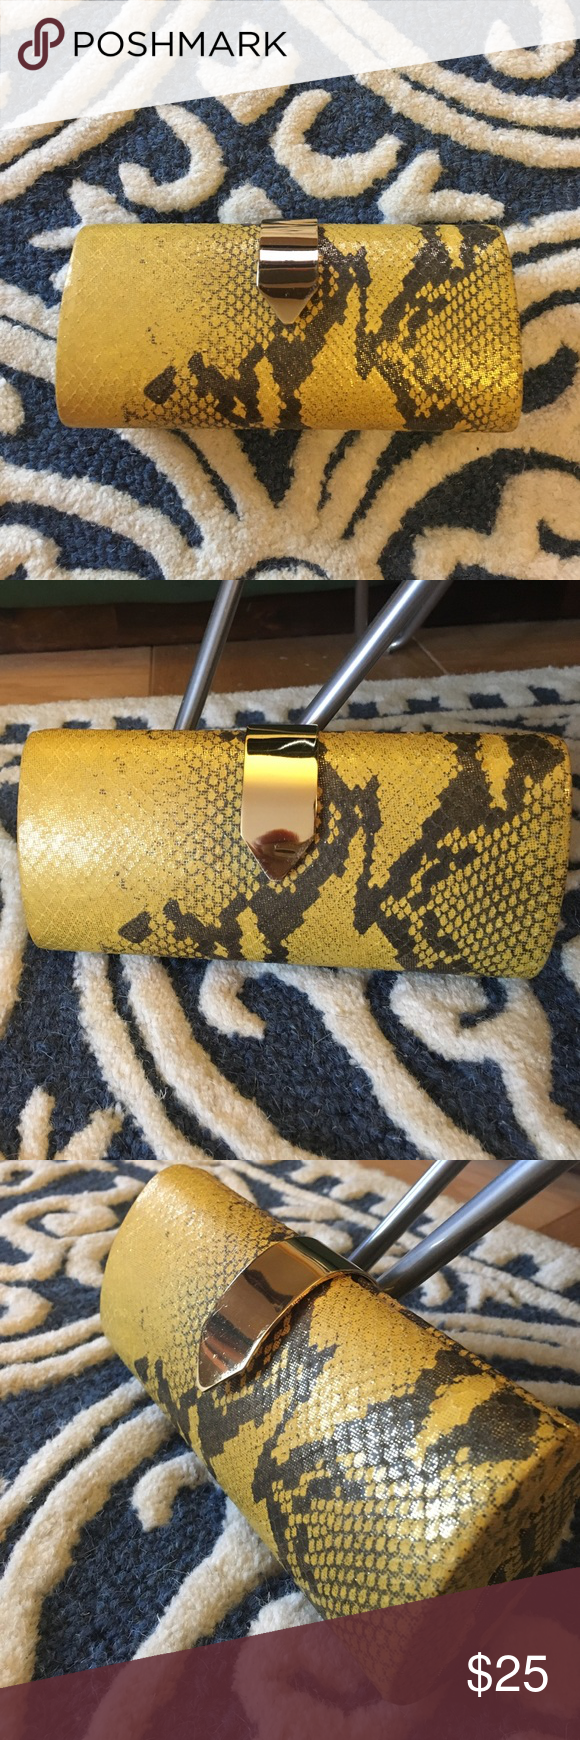 Banana Republic Snake Clutch Sassy and sexy. Bright yellow snake printed leather clutch. Beautiful yellow with shades of gold and gunmetal. Sleek gold closure. Banana Republic Bags Clutches & Wristlets